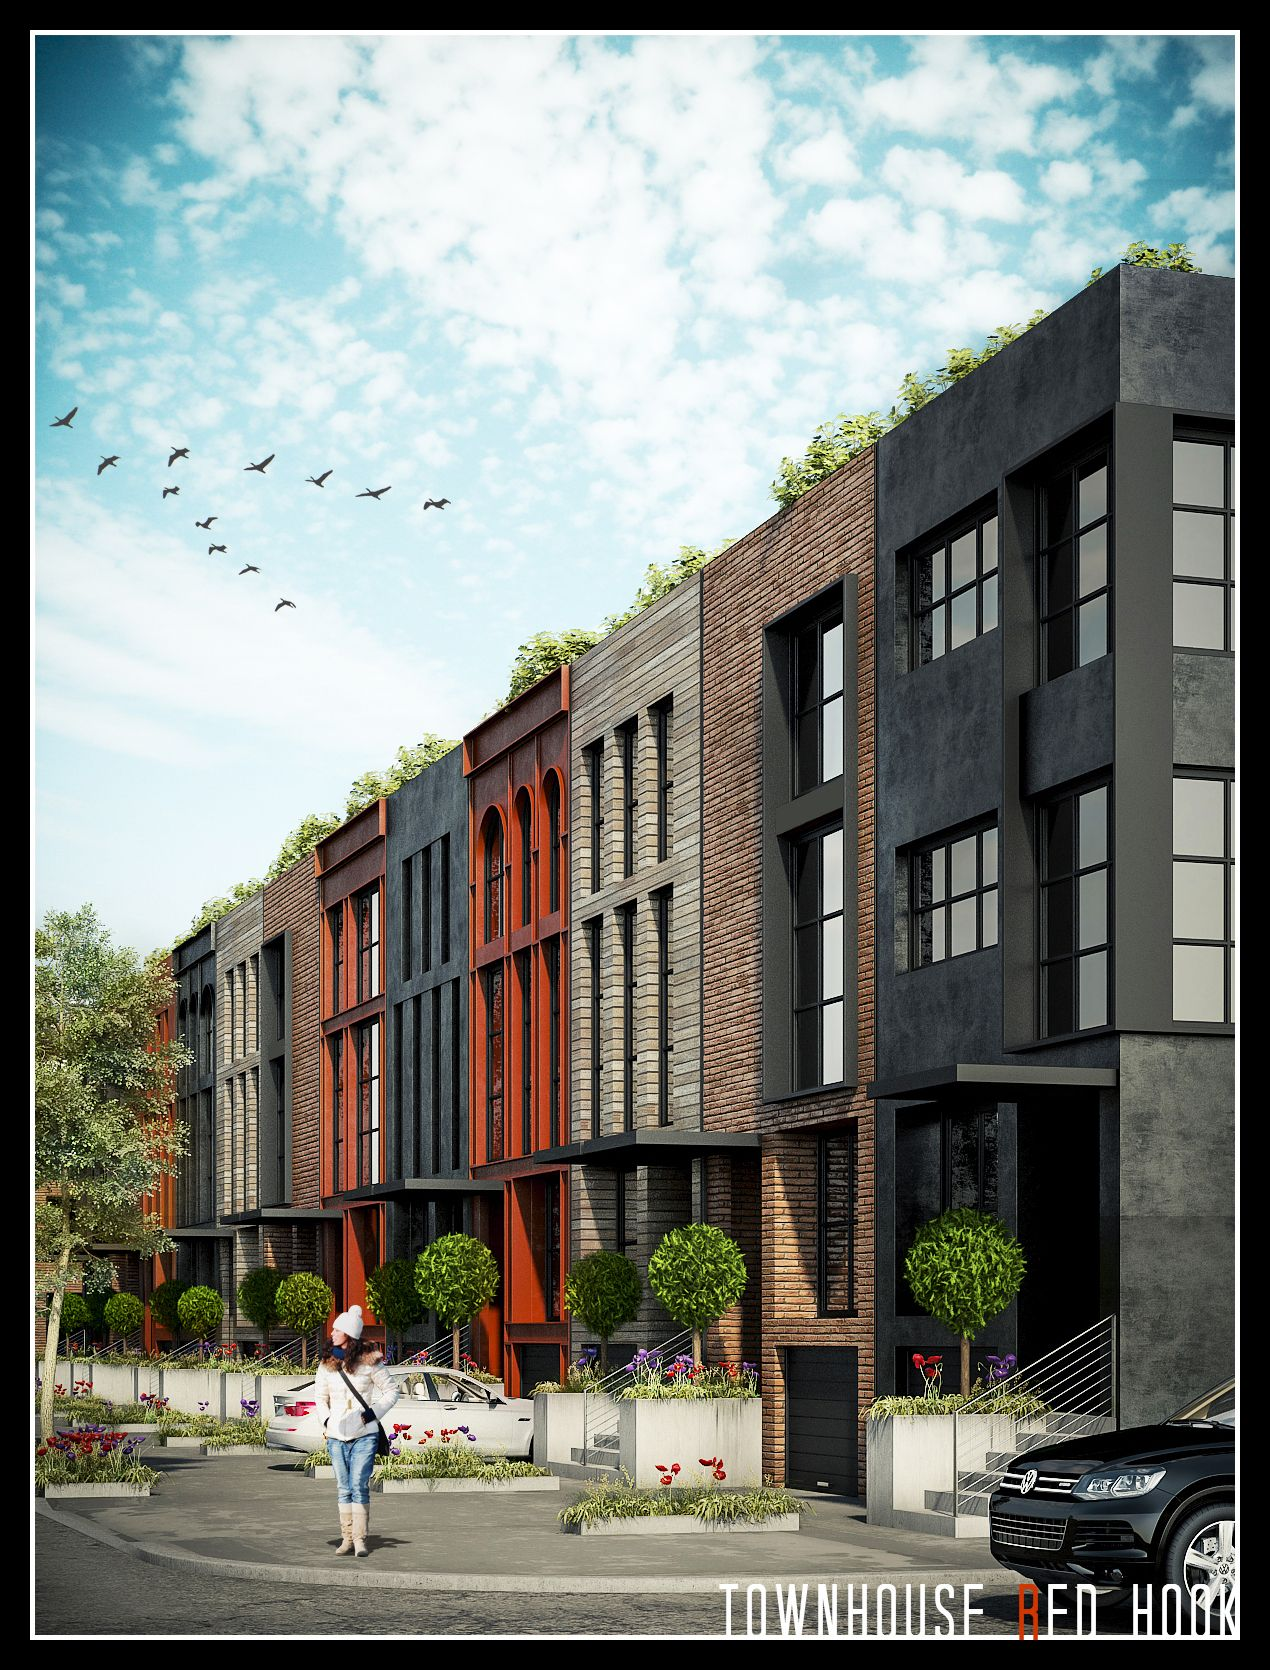 Red Hook - Townhouses 205